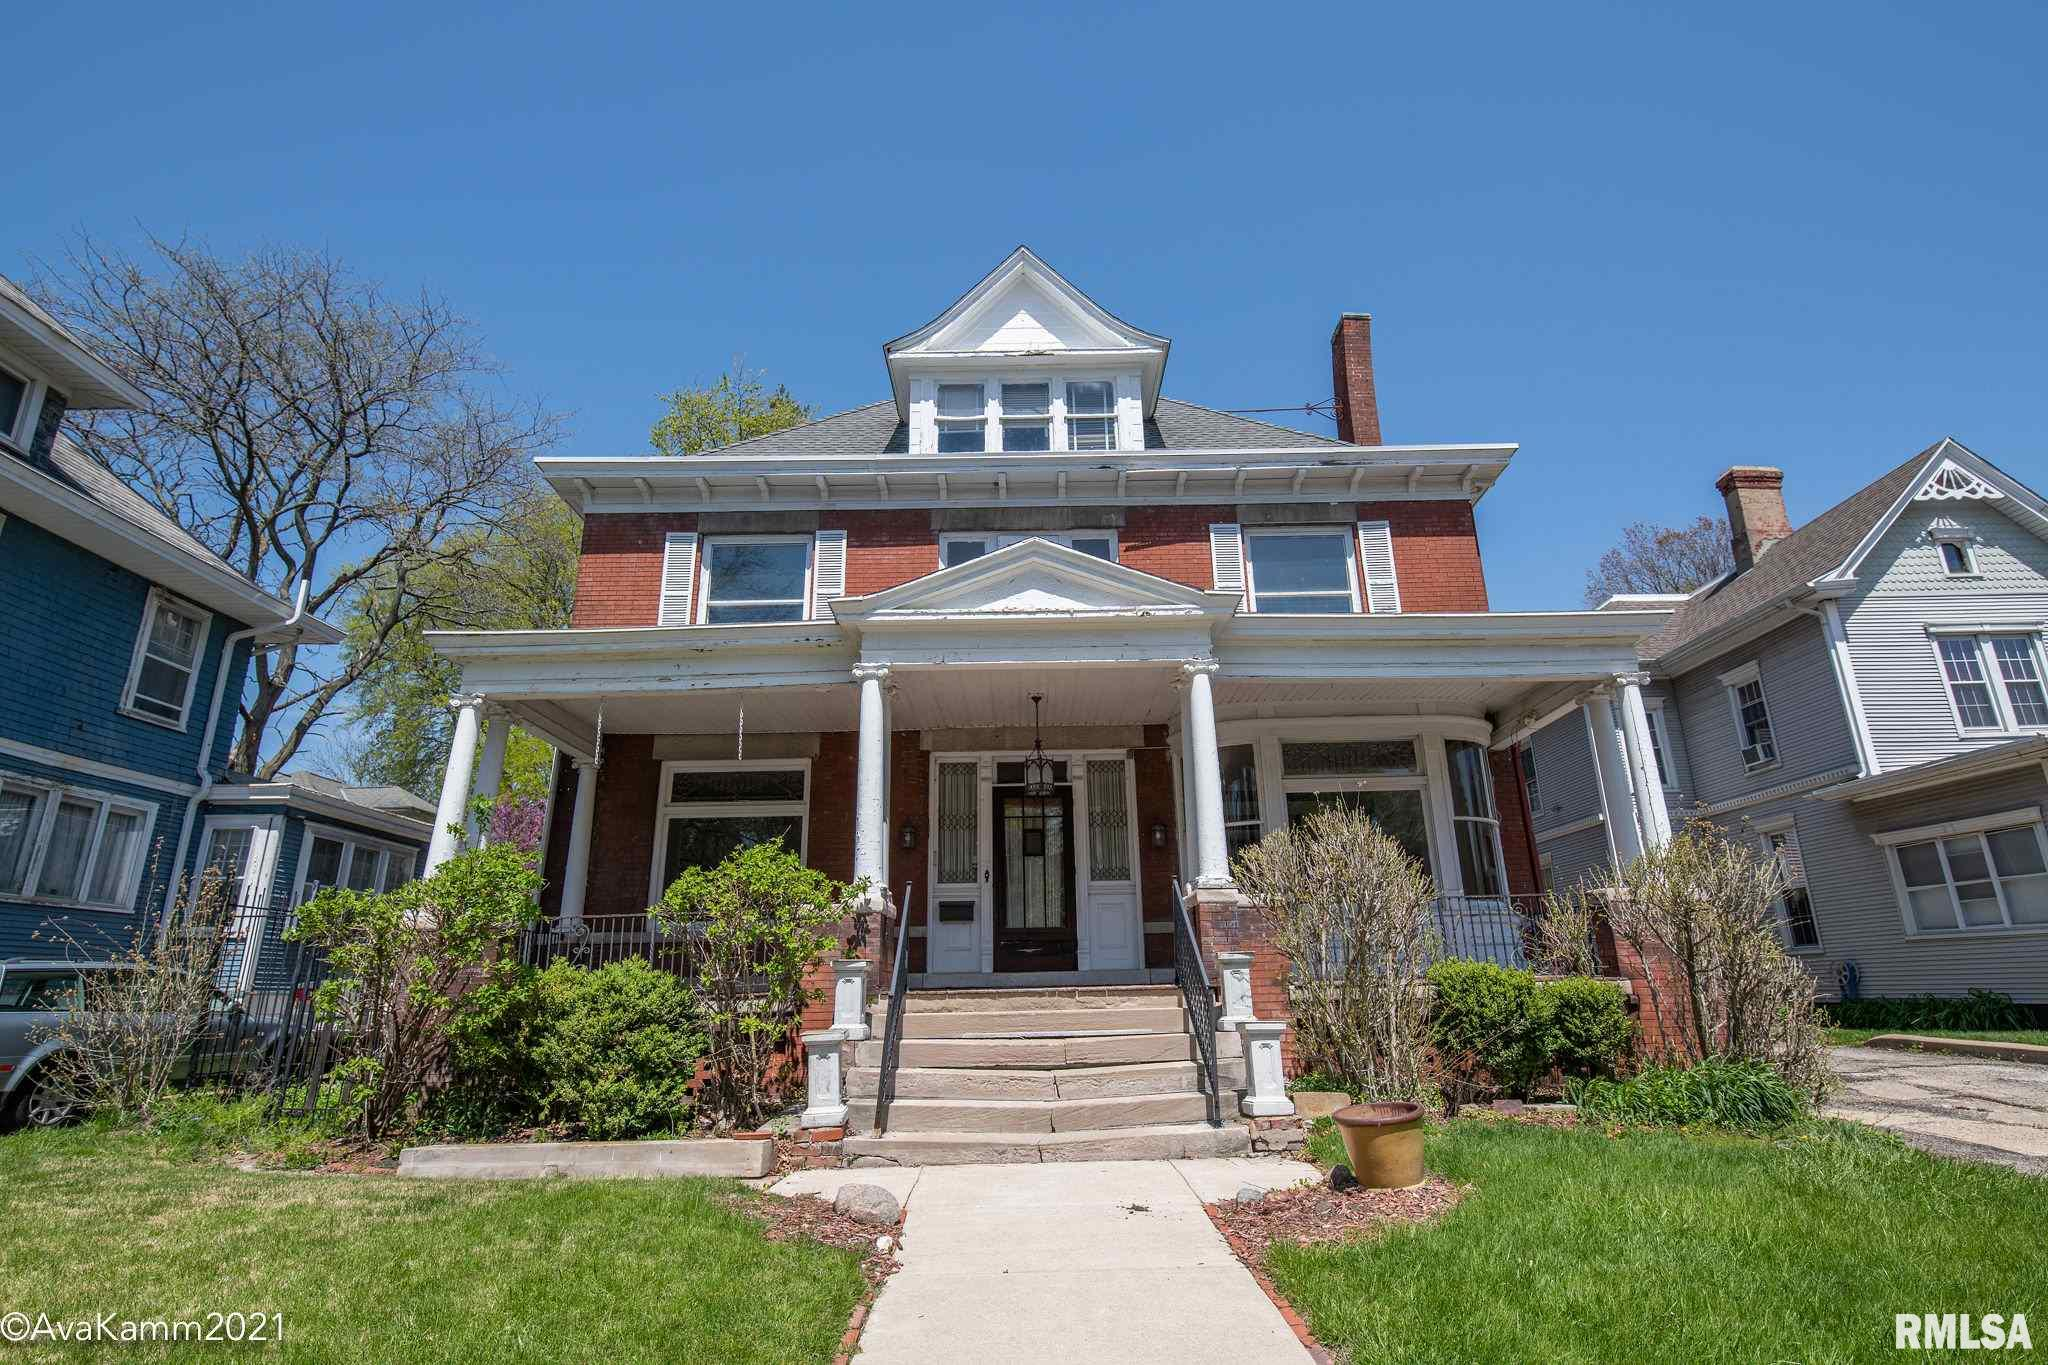 715 W MOSS Property Photo - Peoria, IL real estate listing